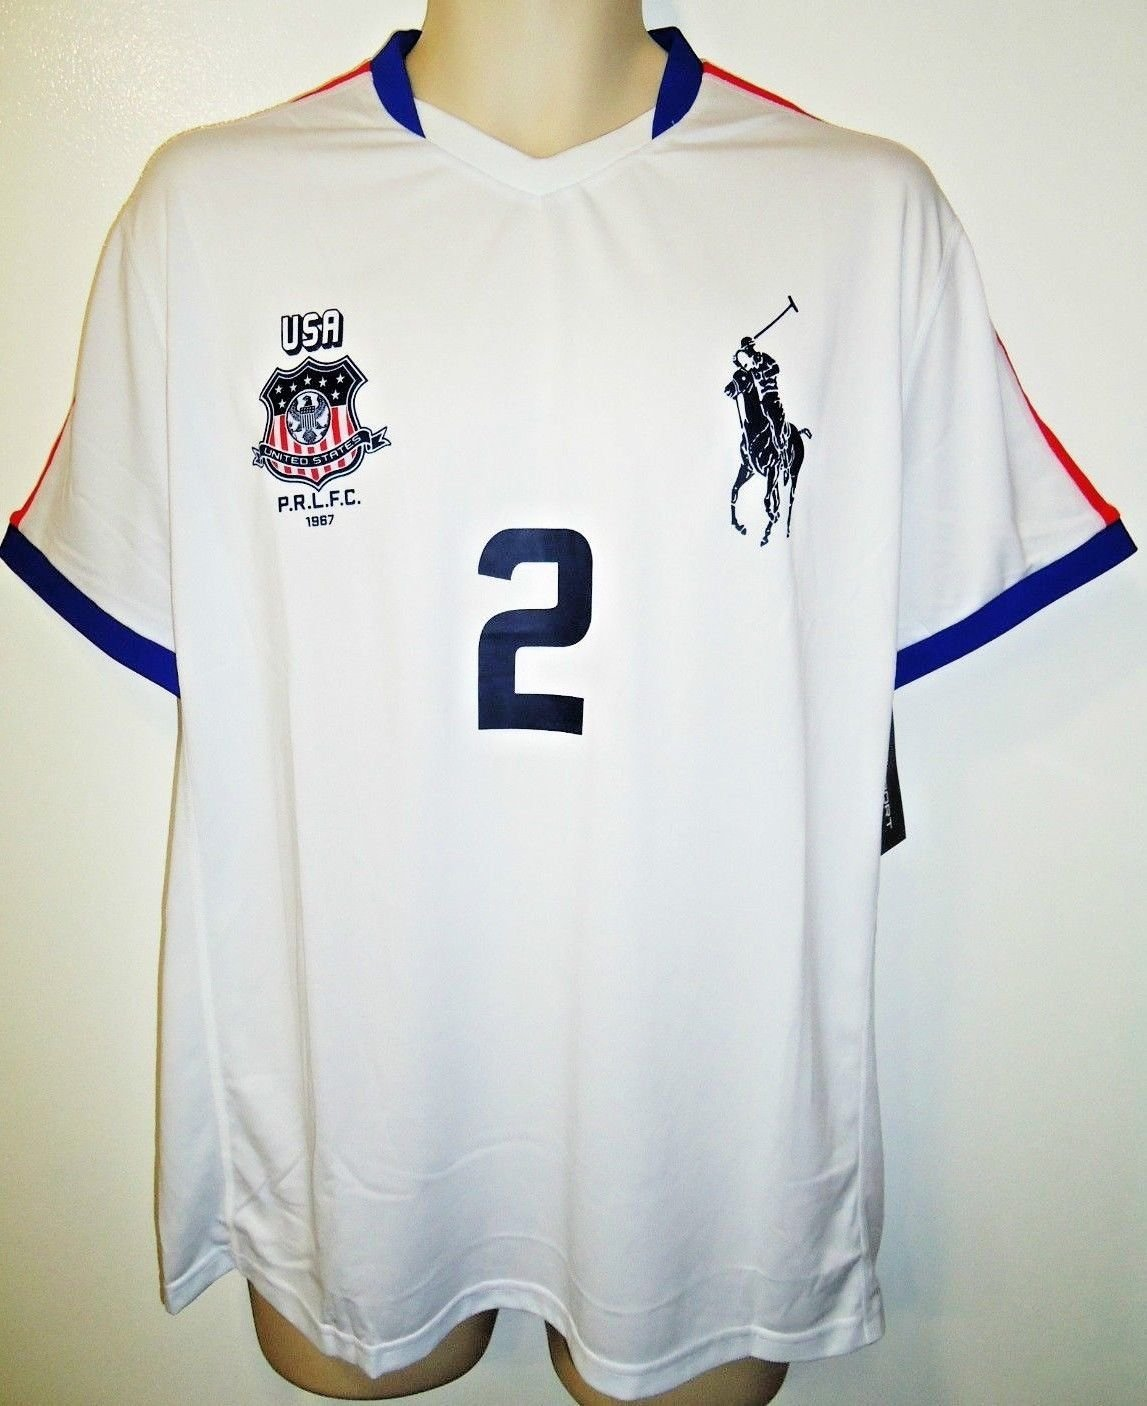 RALPH LAUREN - RLX - SOCCER - JERSEY - BIG PONY - WHITE - BLUE - LARGE - NEW